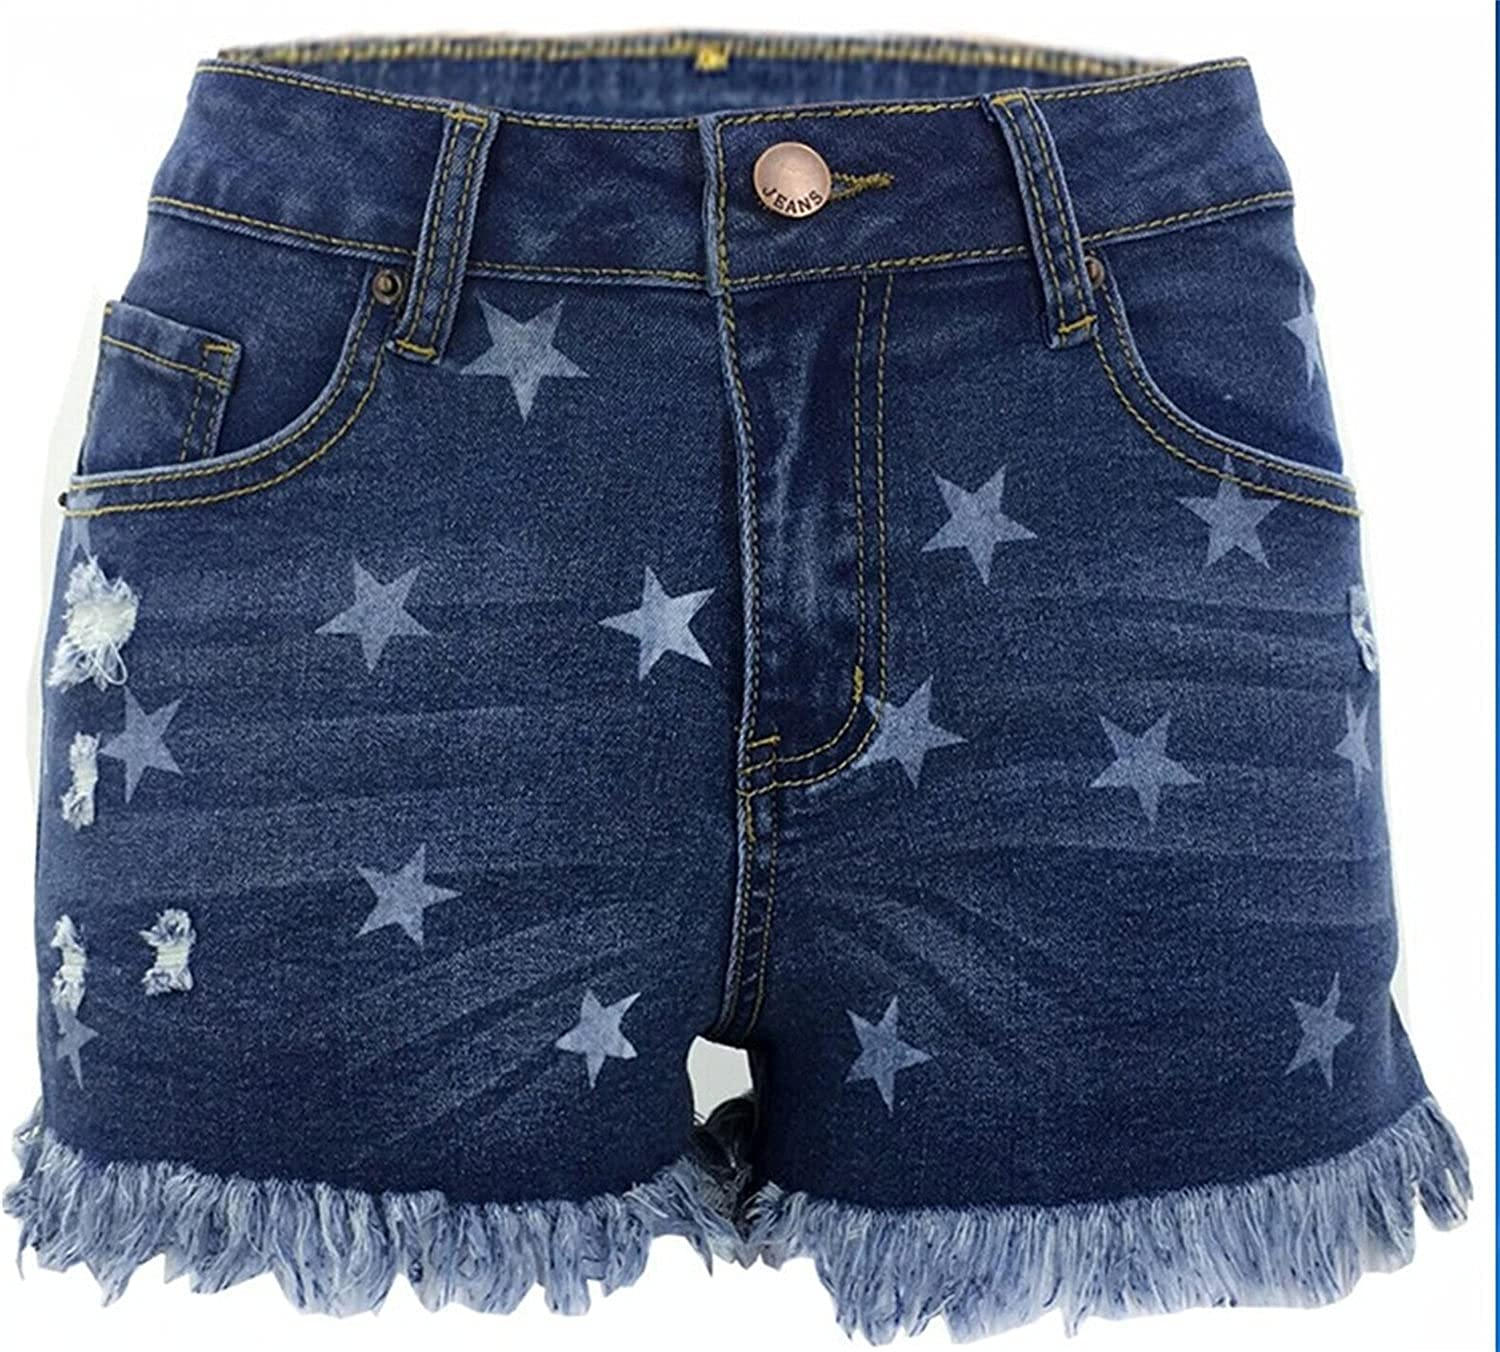 Women's Frayed Raw Hem Casual Denim Shorts Mid Rise Printed Ripped Jeans Hot Shorts Cute Jean Short-pant with Pockets